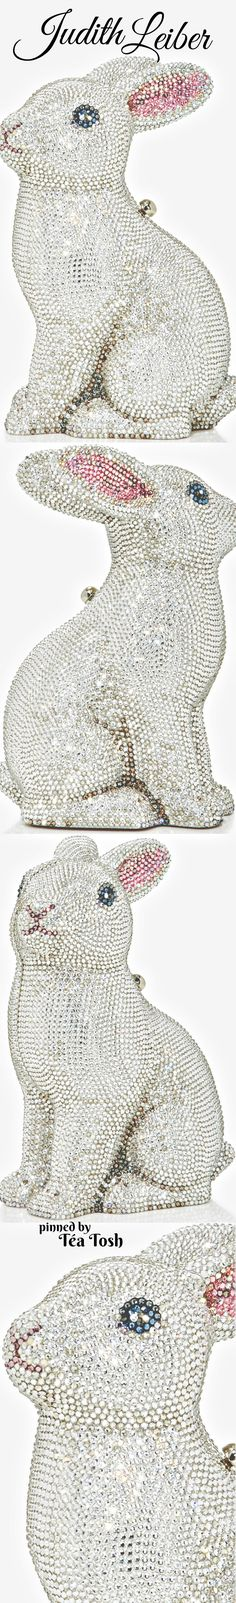 This **Judith Leiber** clutch is rendered in Austrian crystals and features a bunny silhouette and lambskin interior. Judith Leiber, Cute Bags, Spring Colors, Colorful Fashion, Evening Bags, Bling, Jewels, Purses, Holiday Bags